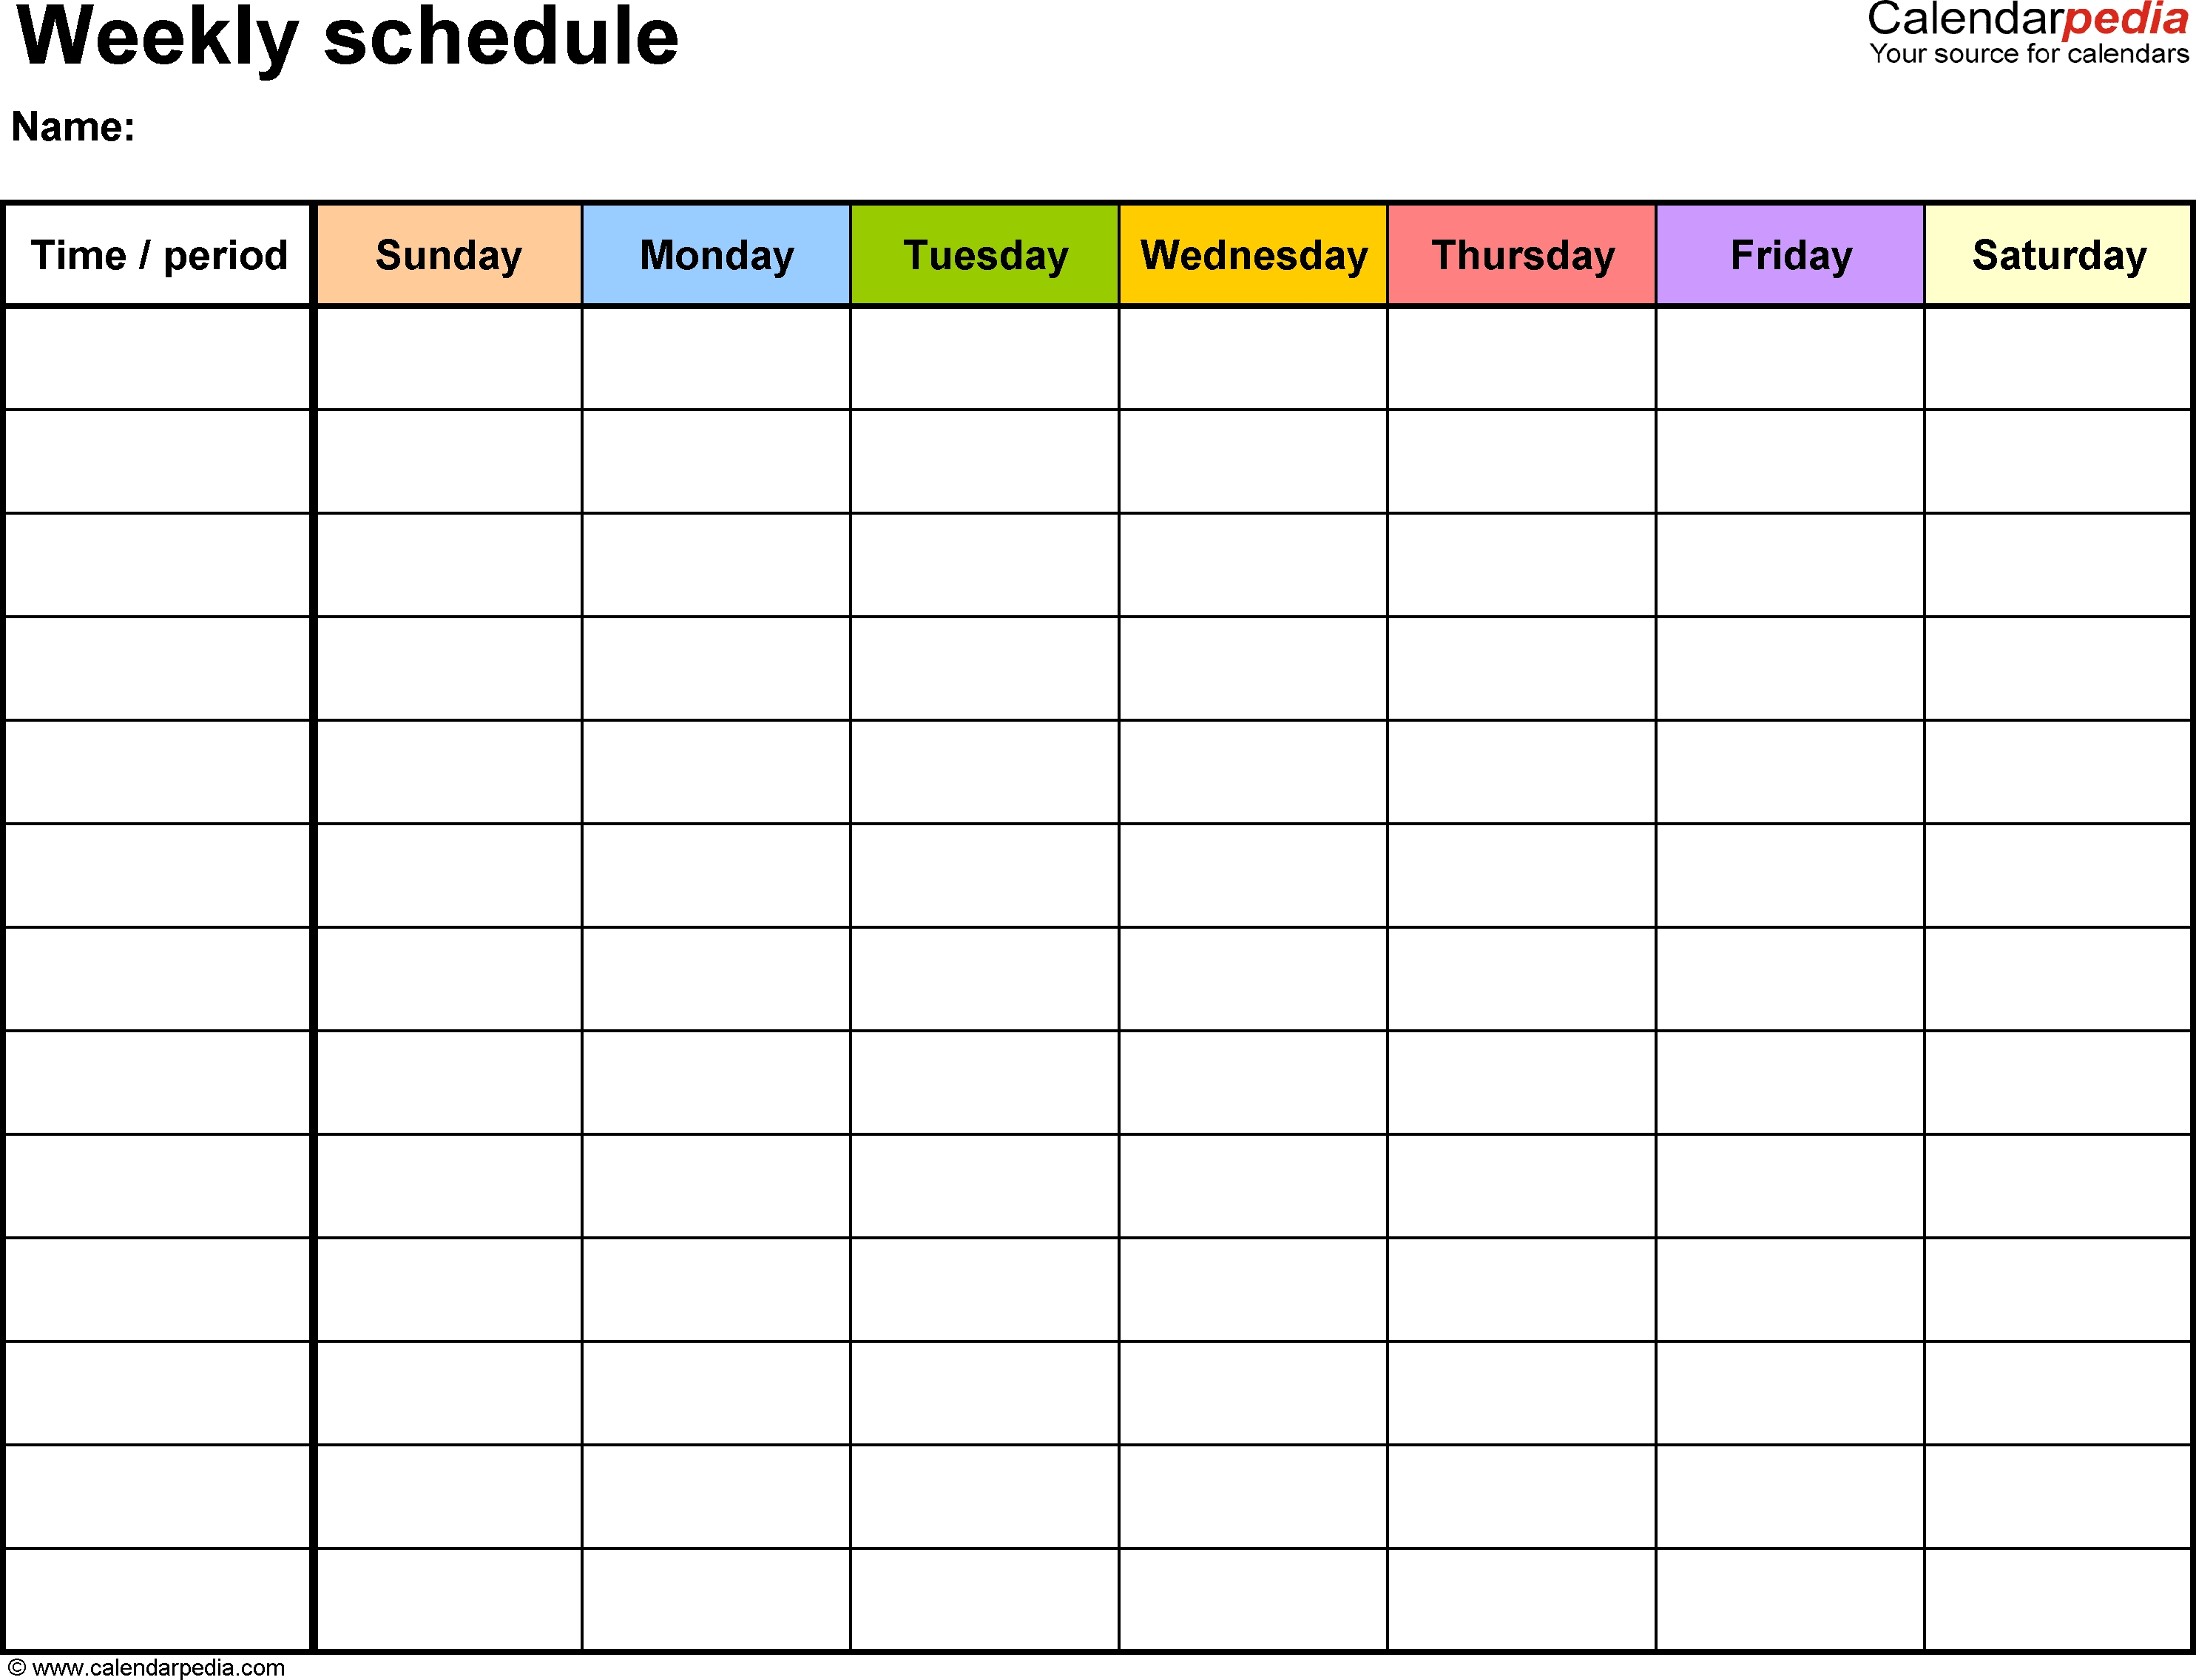 Free Weekly Schedule Templates For Pdf - 18 Templates within Printable Daily Calendar Without Time Slots